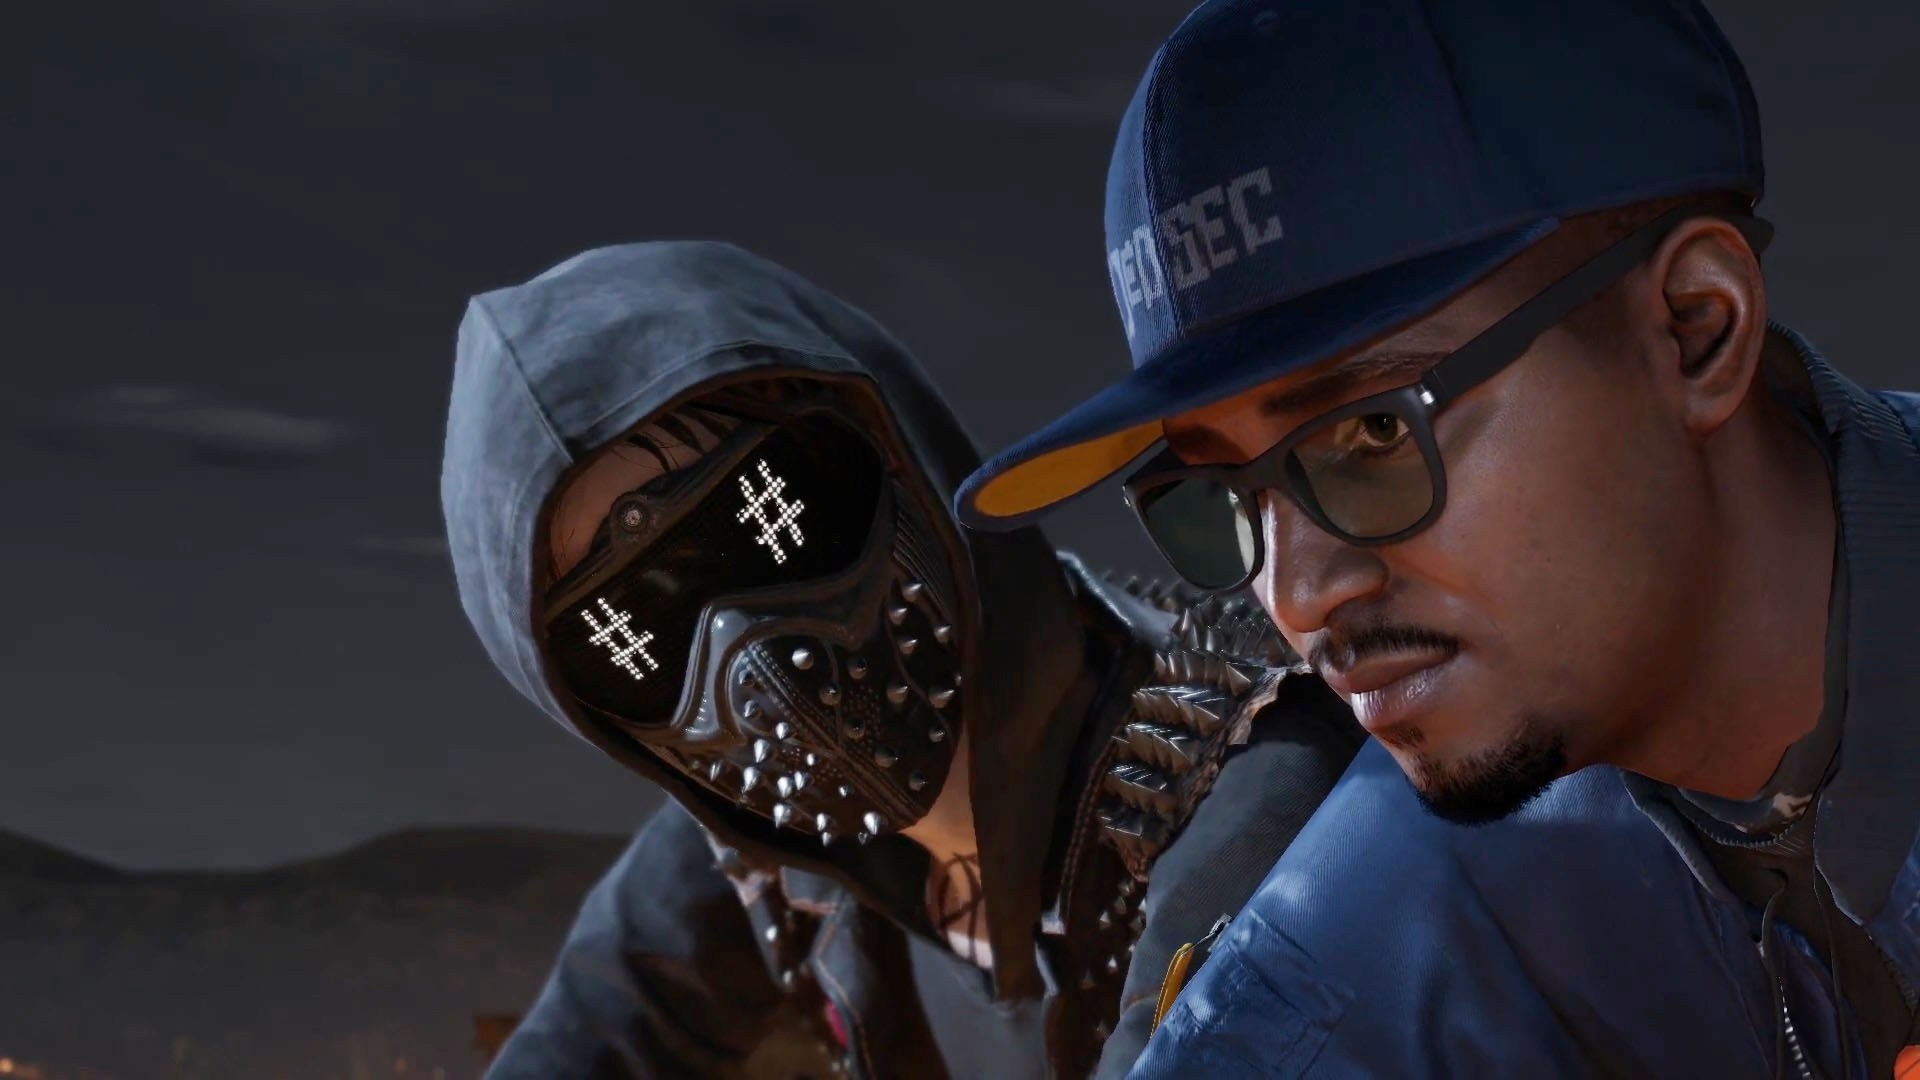 Watch Dogs 2 DLC PS4 Exclusive for 30 Days